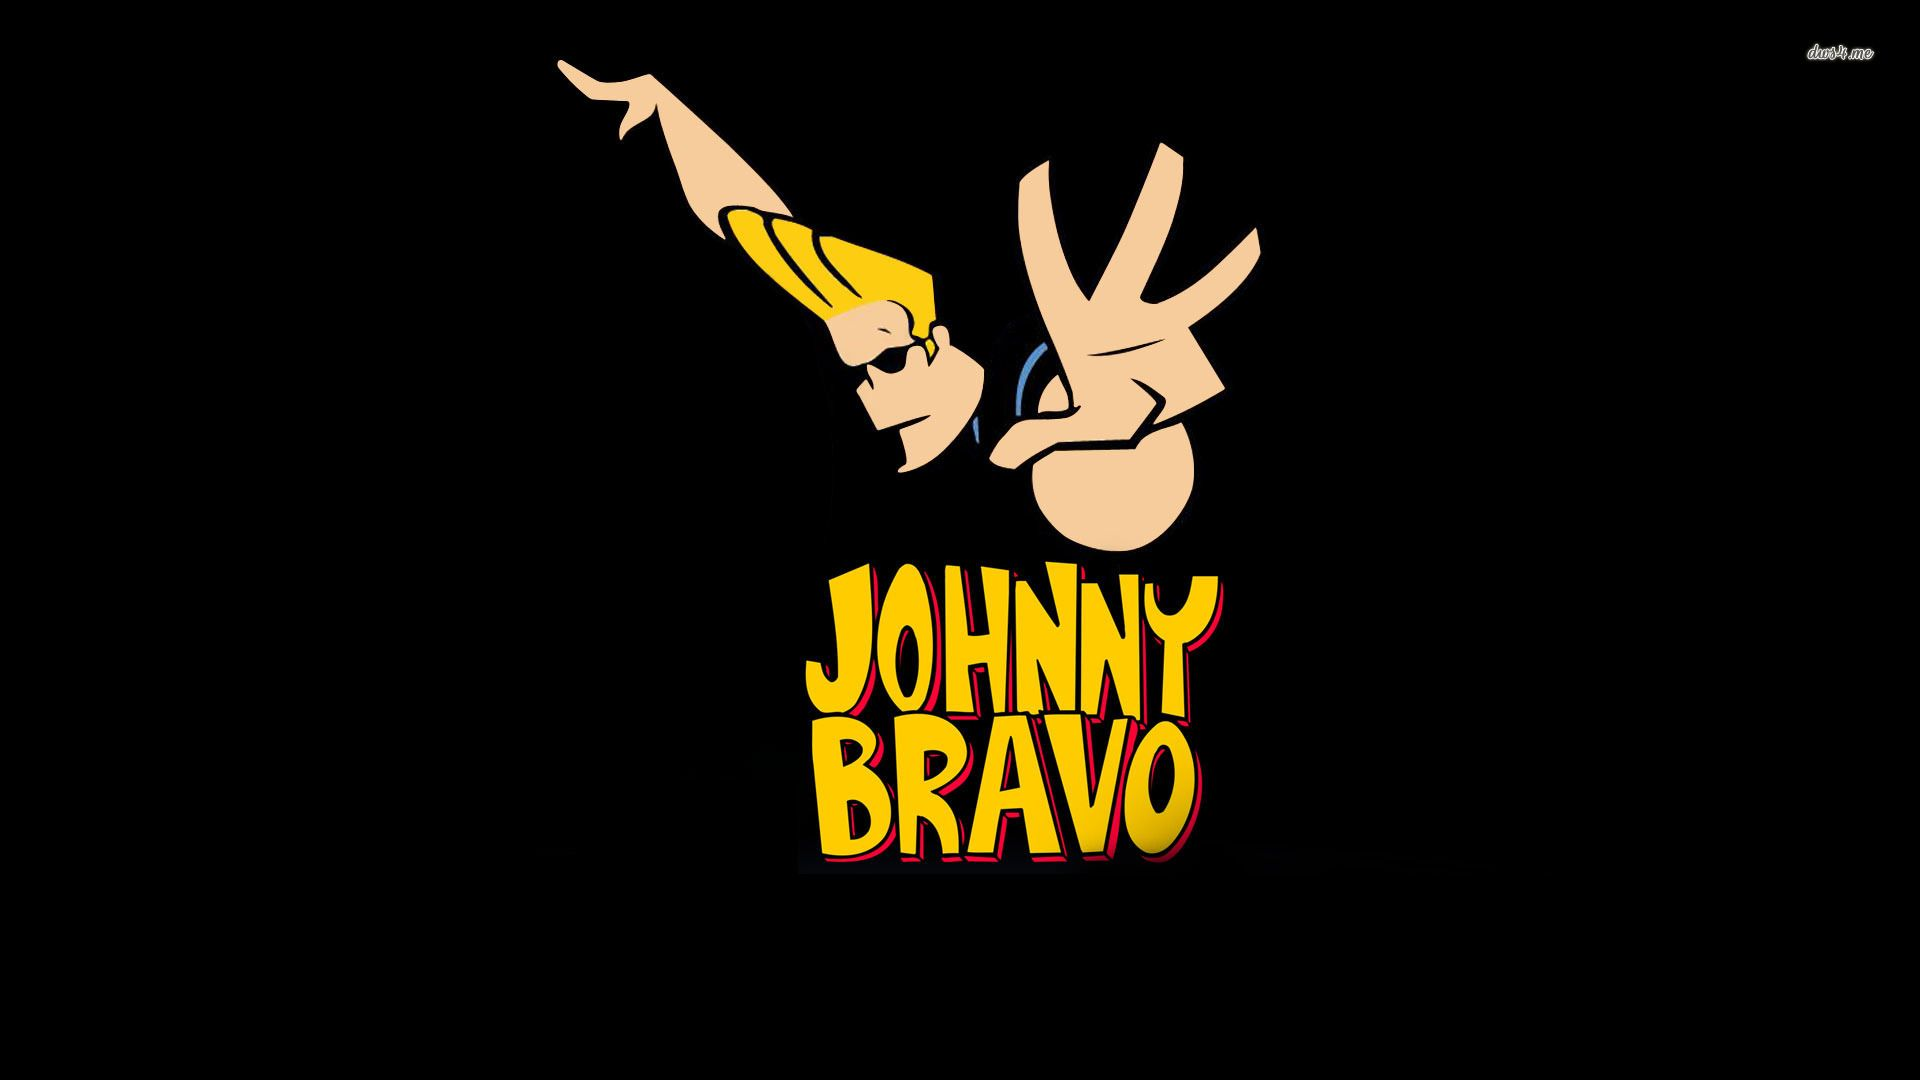 Wallpaper download mood off - Johnny Bravo Hd Wallpapers Dow Mood Illustration Pinterest Johnny Bravo